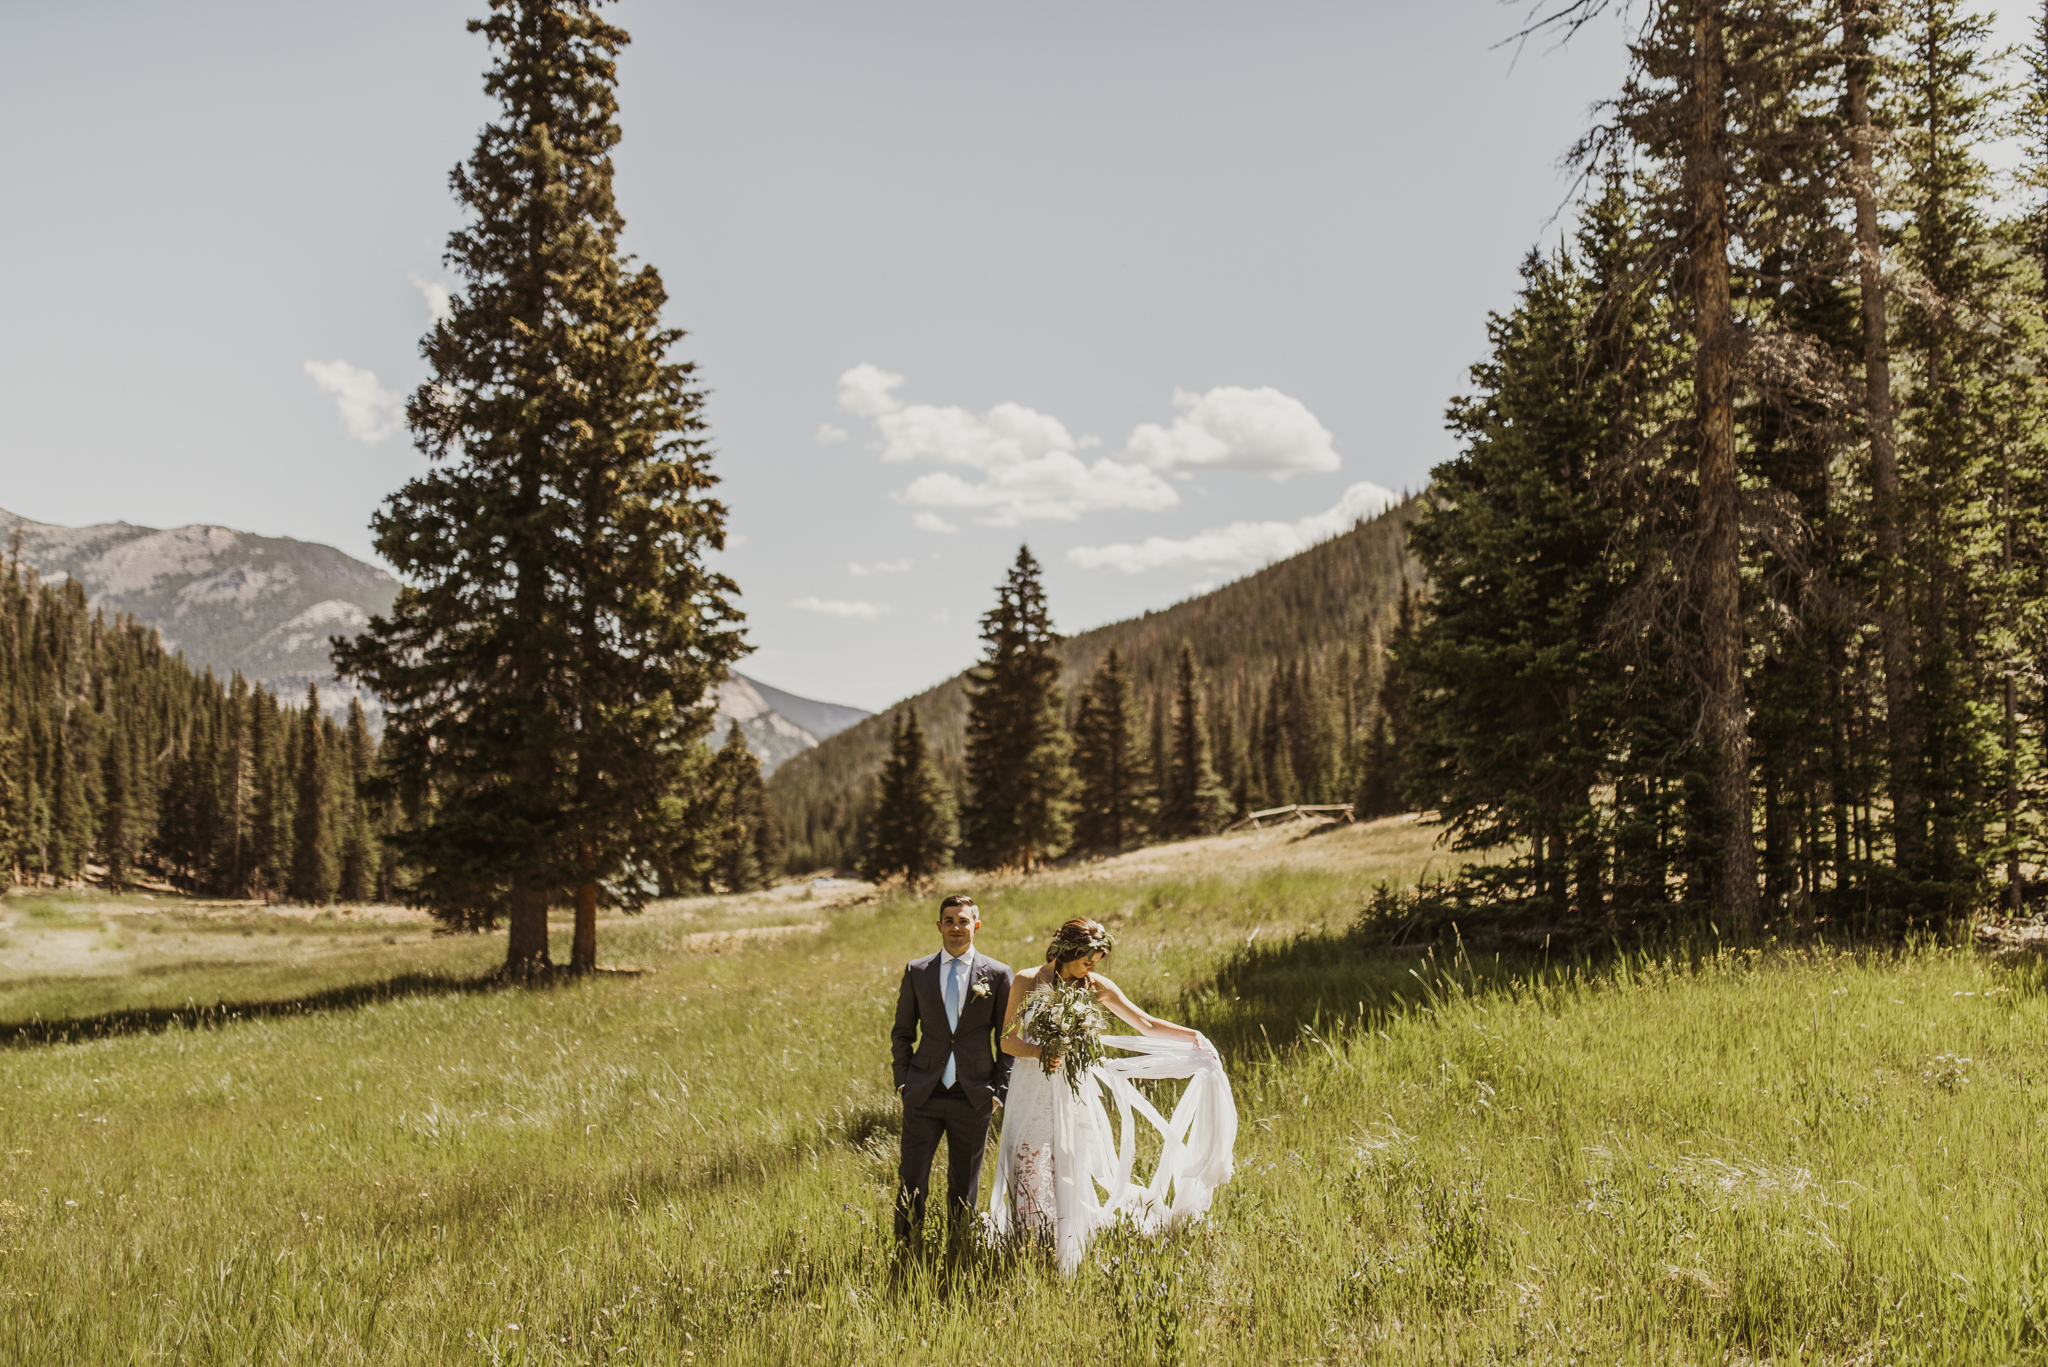 ©Isaiah + Taylor Photography - Estes National Park Adventure Elopement, Colorado Rockies-69.jpg